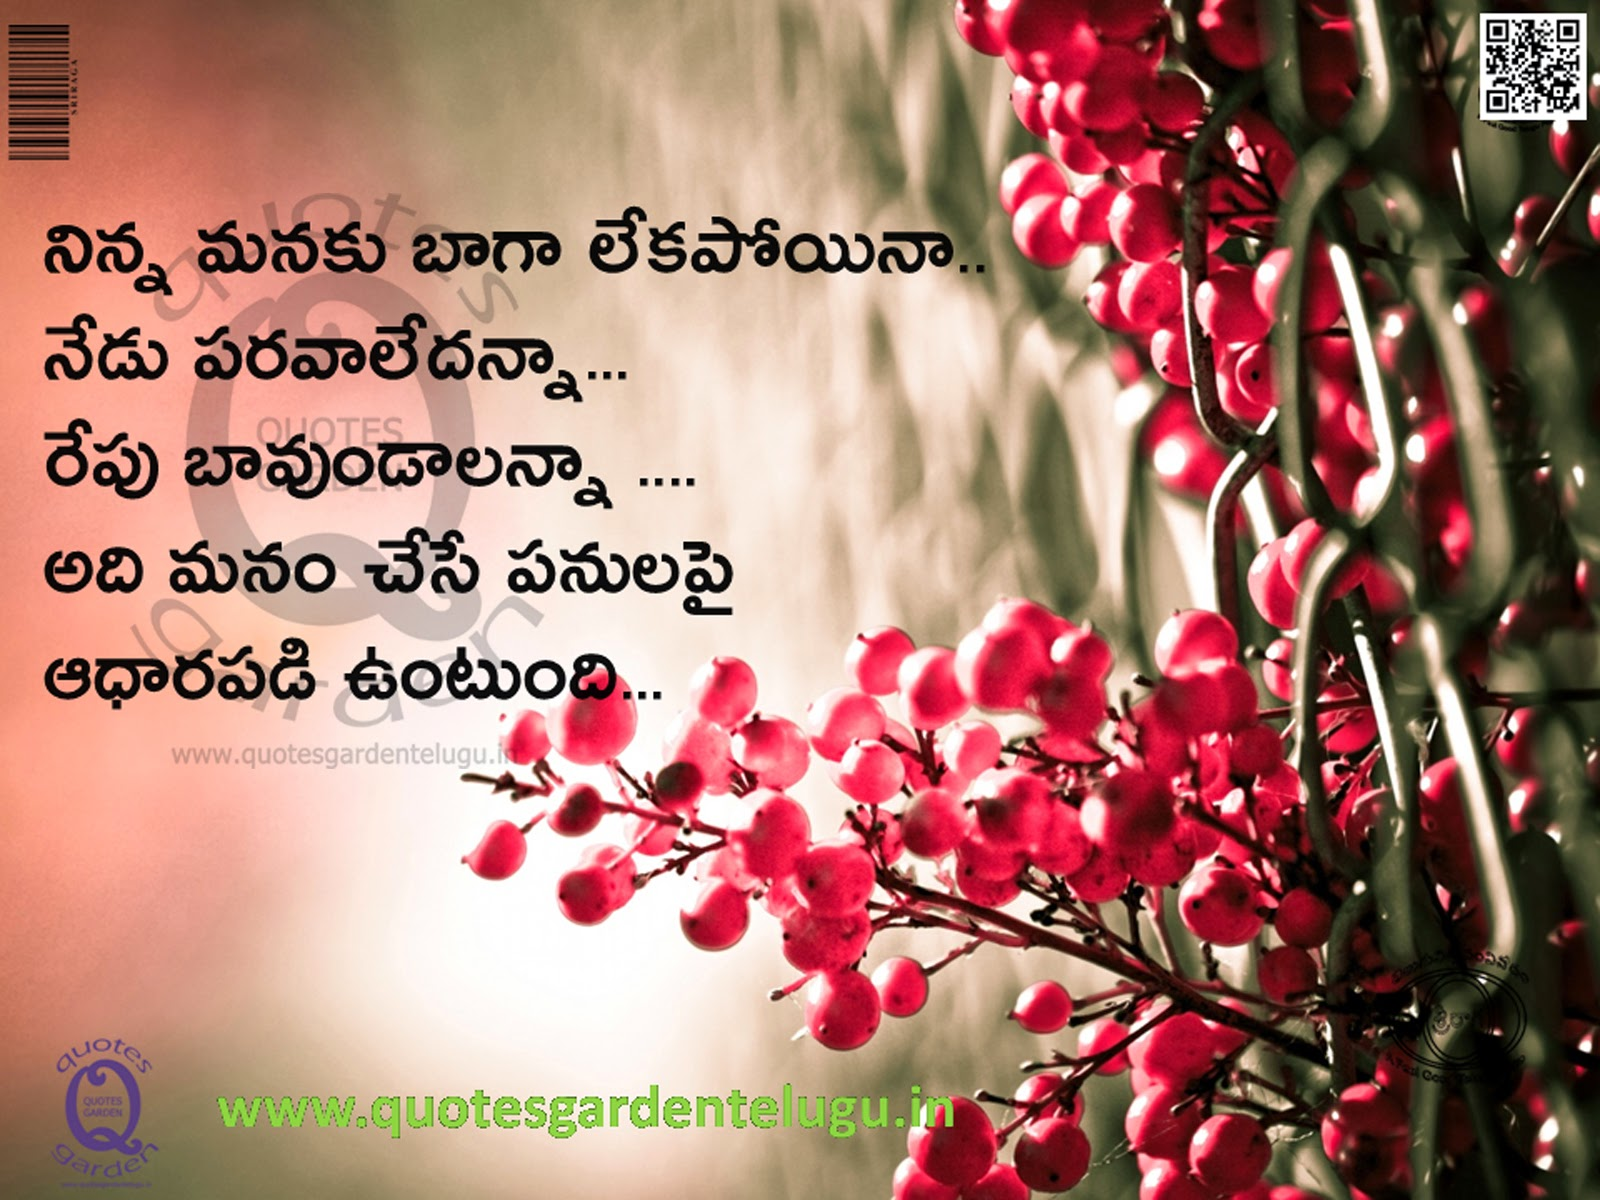 Best inspirational quotes about life - Best telugu inspirational quotes - Best telugu inspirational quotes about life - Best telugu Quotes - Telugu life quotes